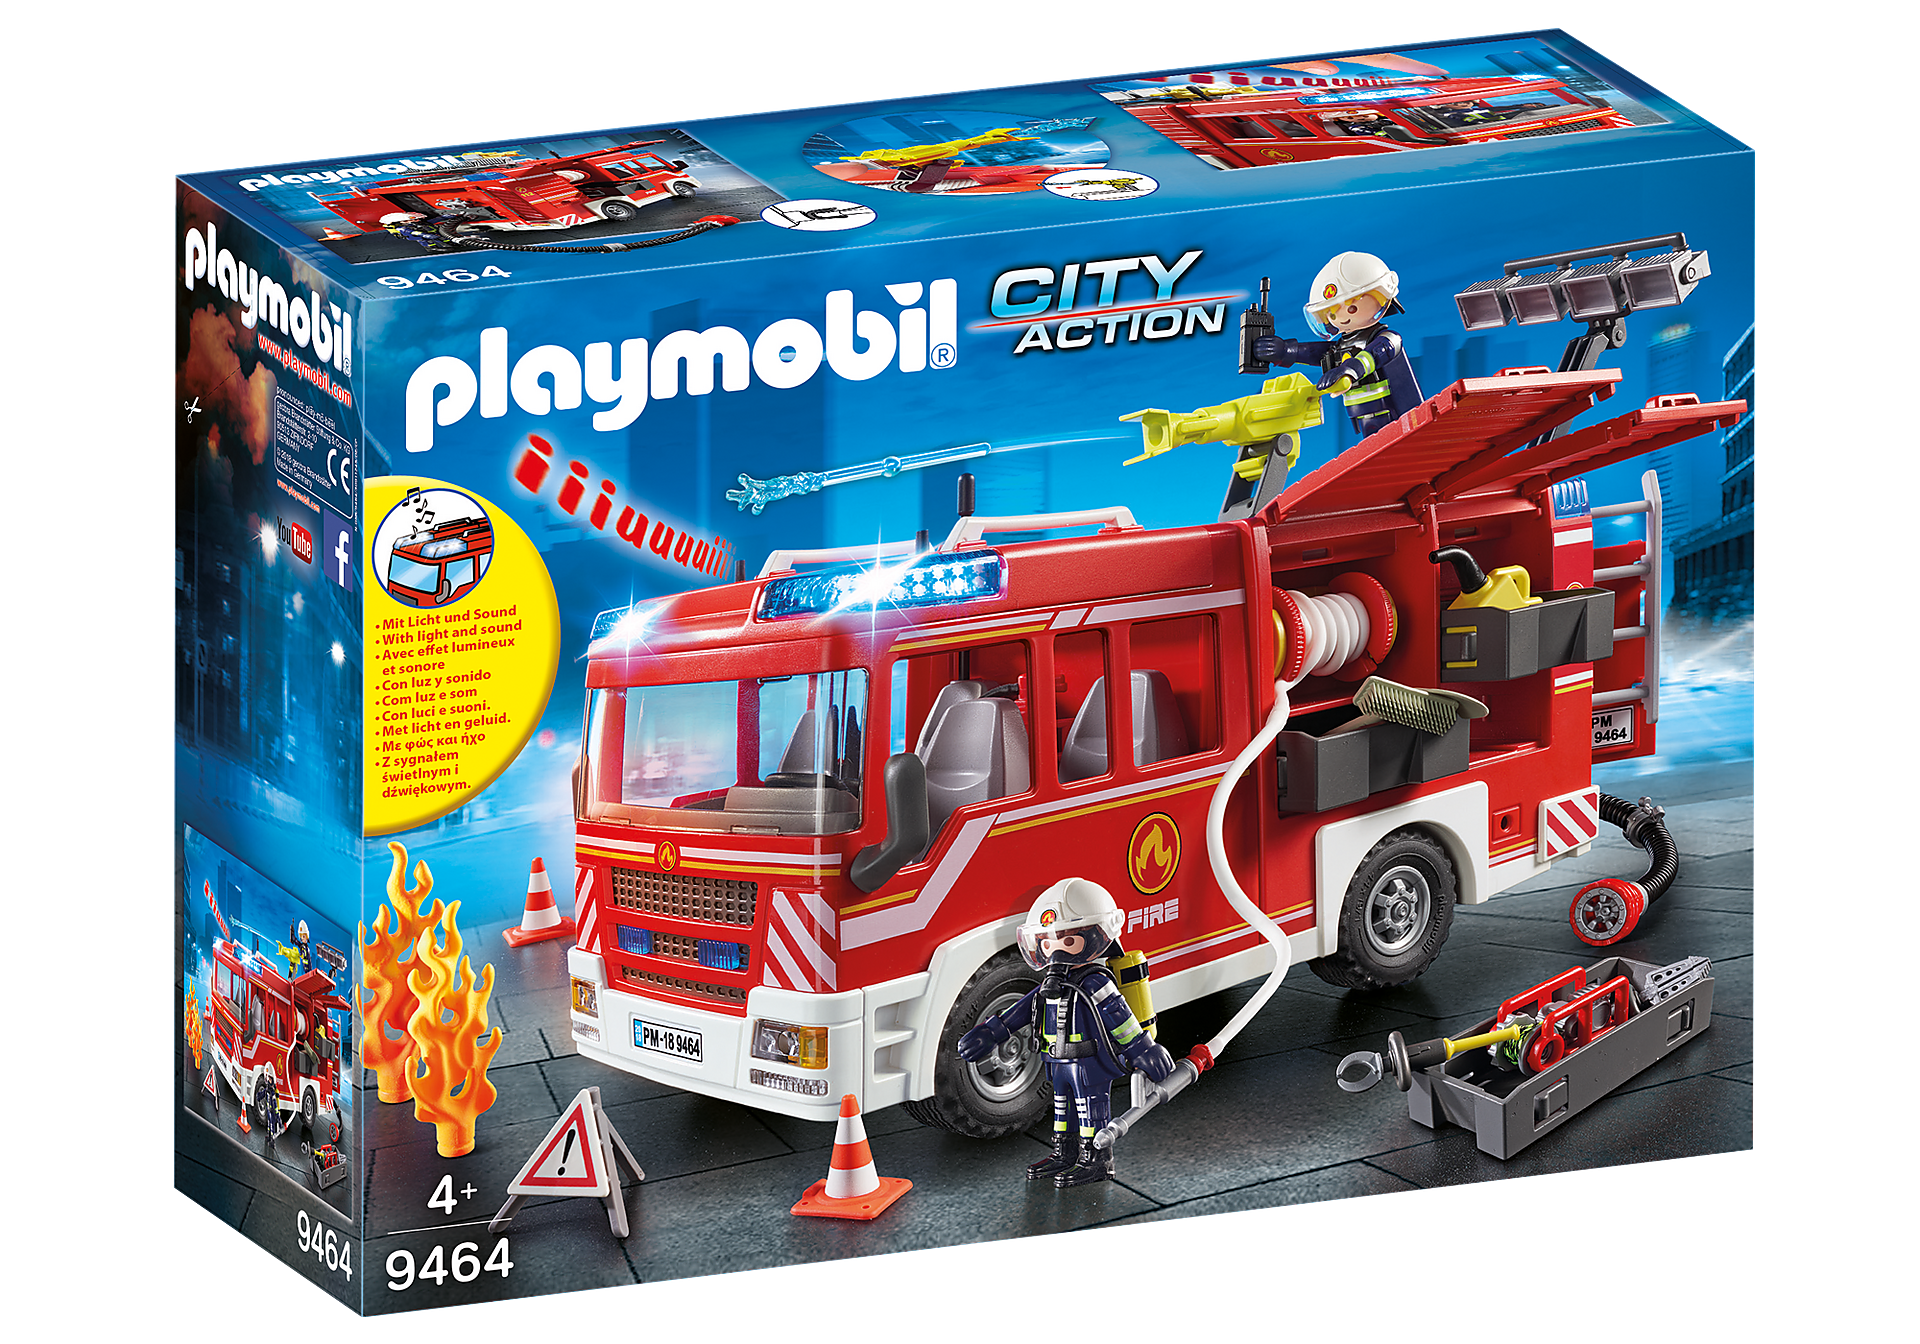 http://media.playmobil.com/i/playmobil/9464_product_box_front/Udrykningsvogn